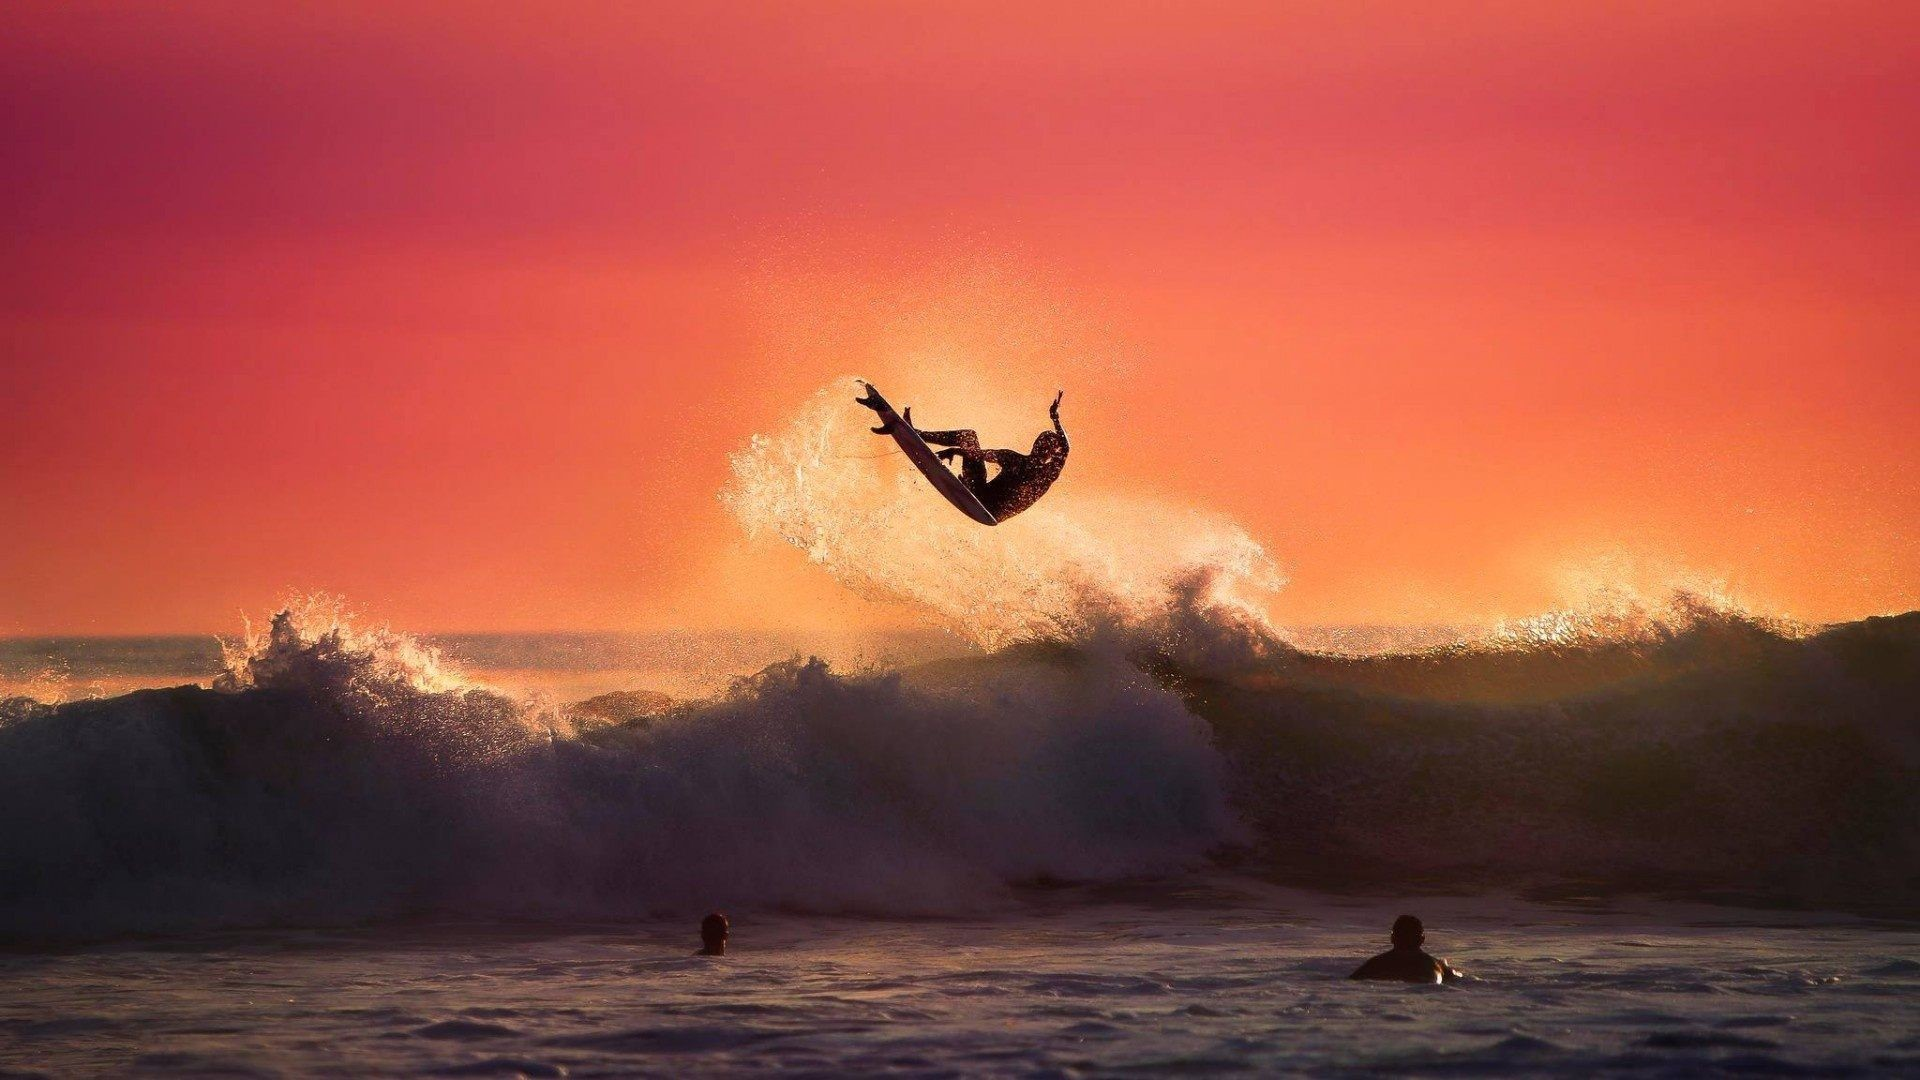 Free Surfing Wallpapers Desktop: Surfing Wallpaper And Screensavers (60+ Images